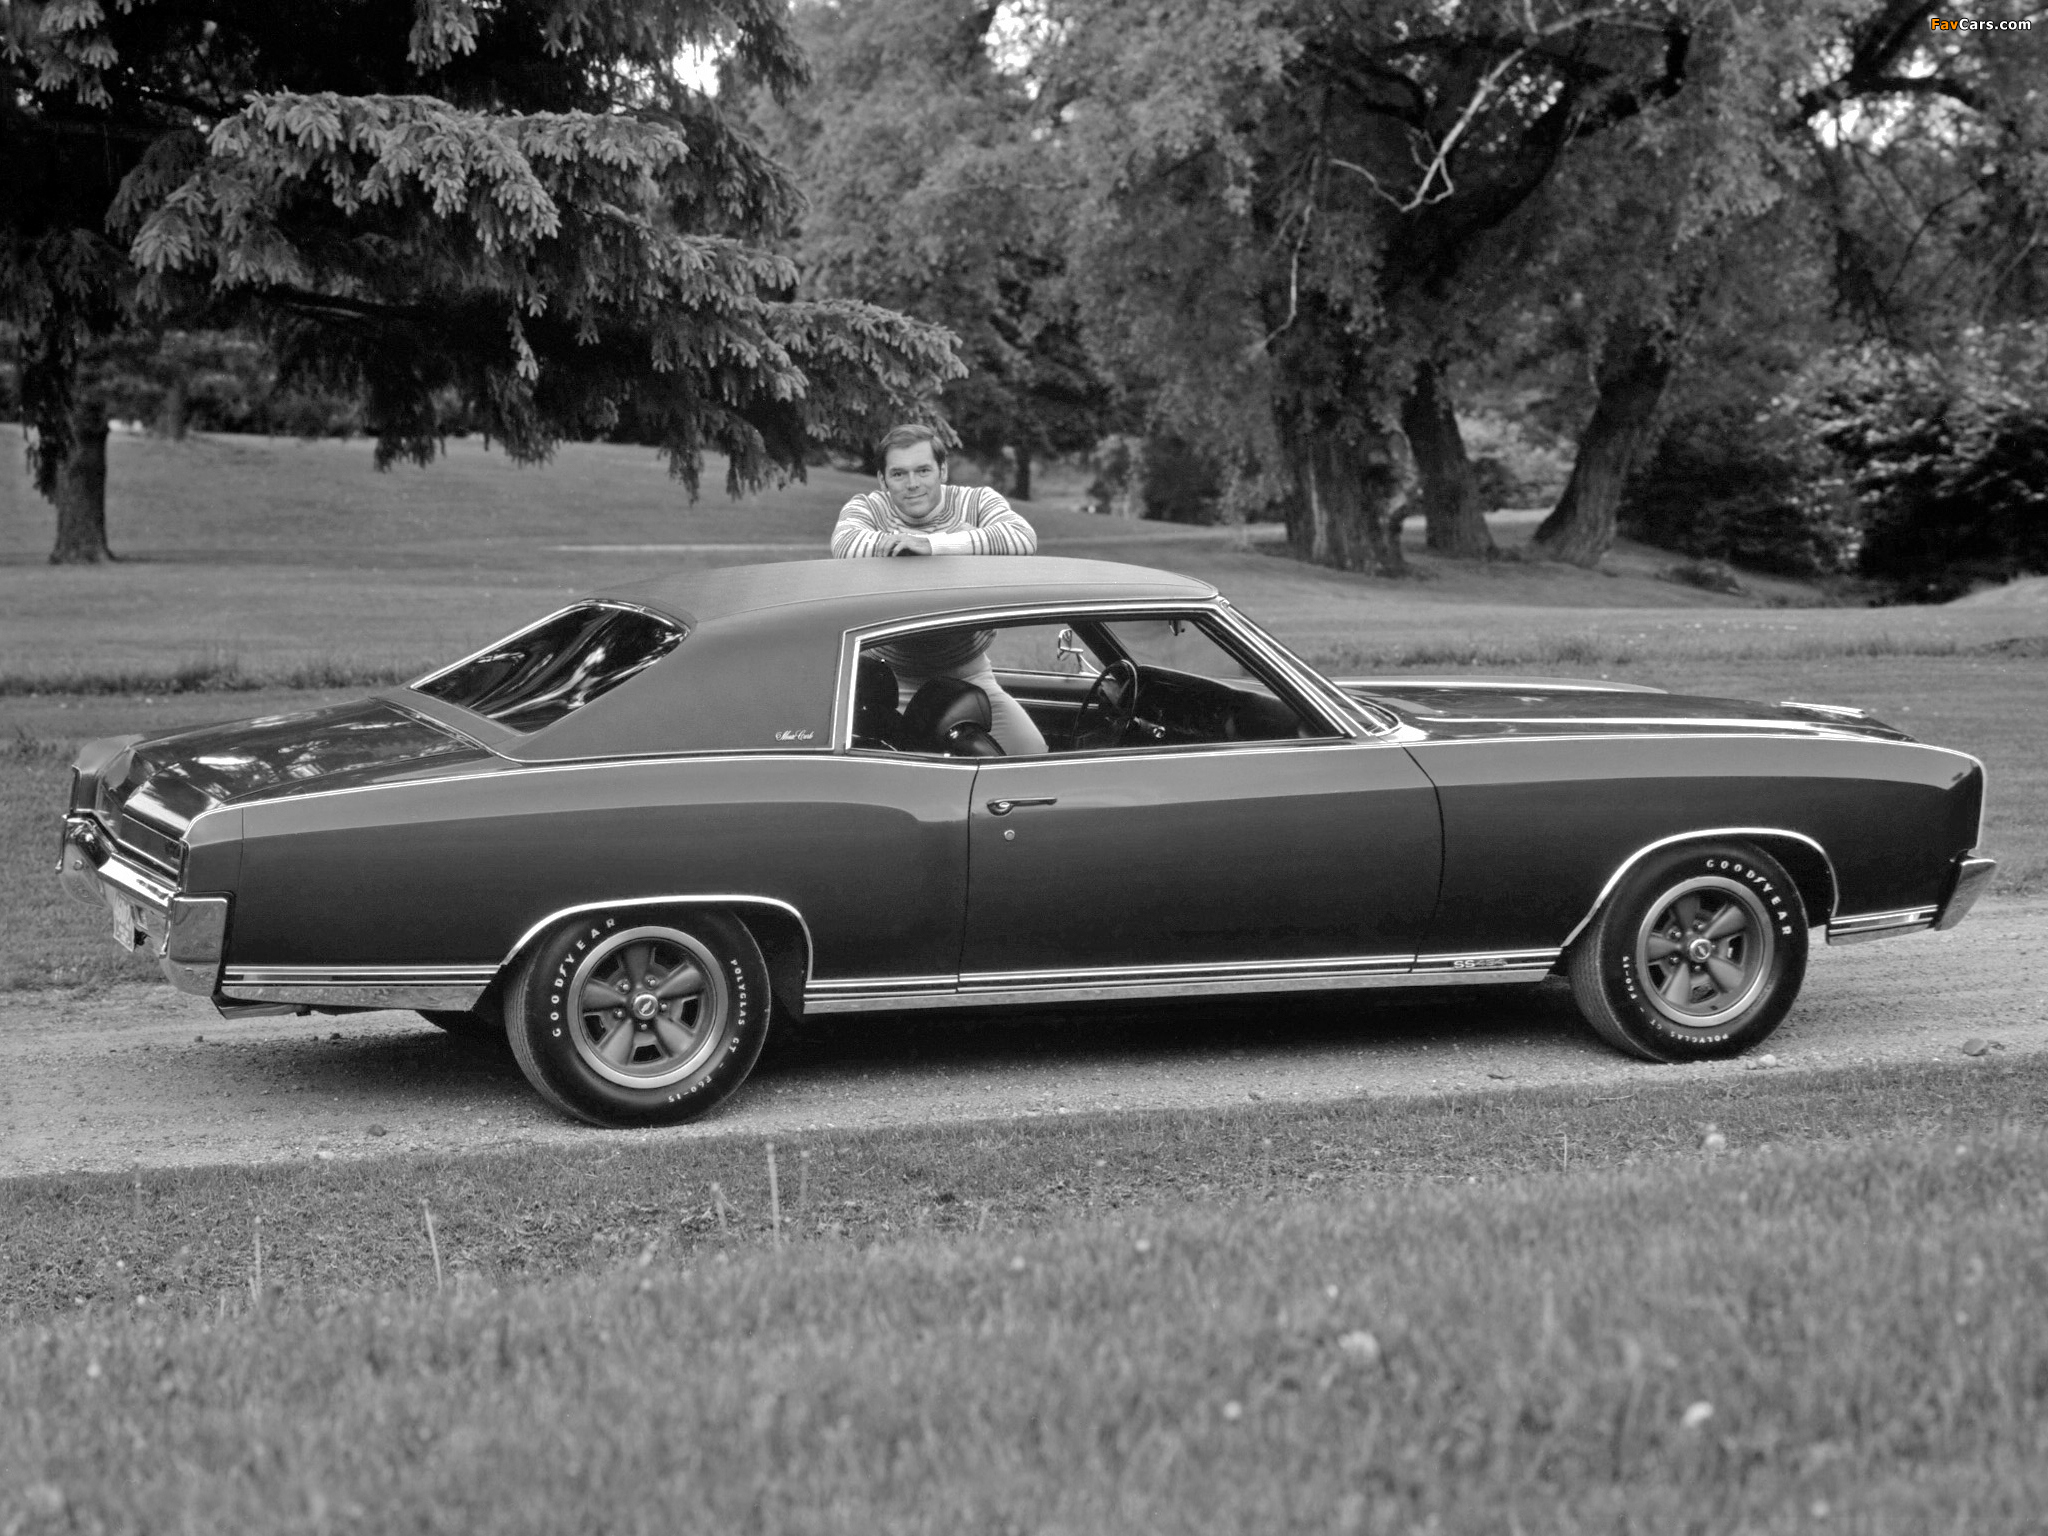 photos_chevrolet_monte-carlo_1971_2 Take A Look About 1980 Monte Carlo for Sale with Mesmerizing Photos Cars Review